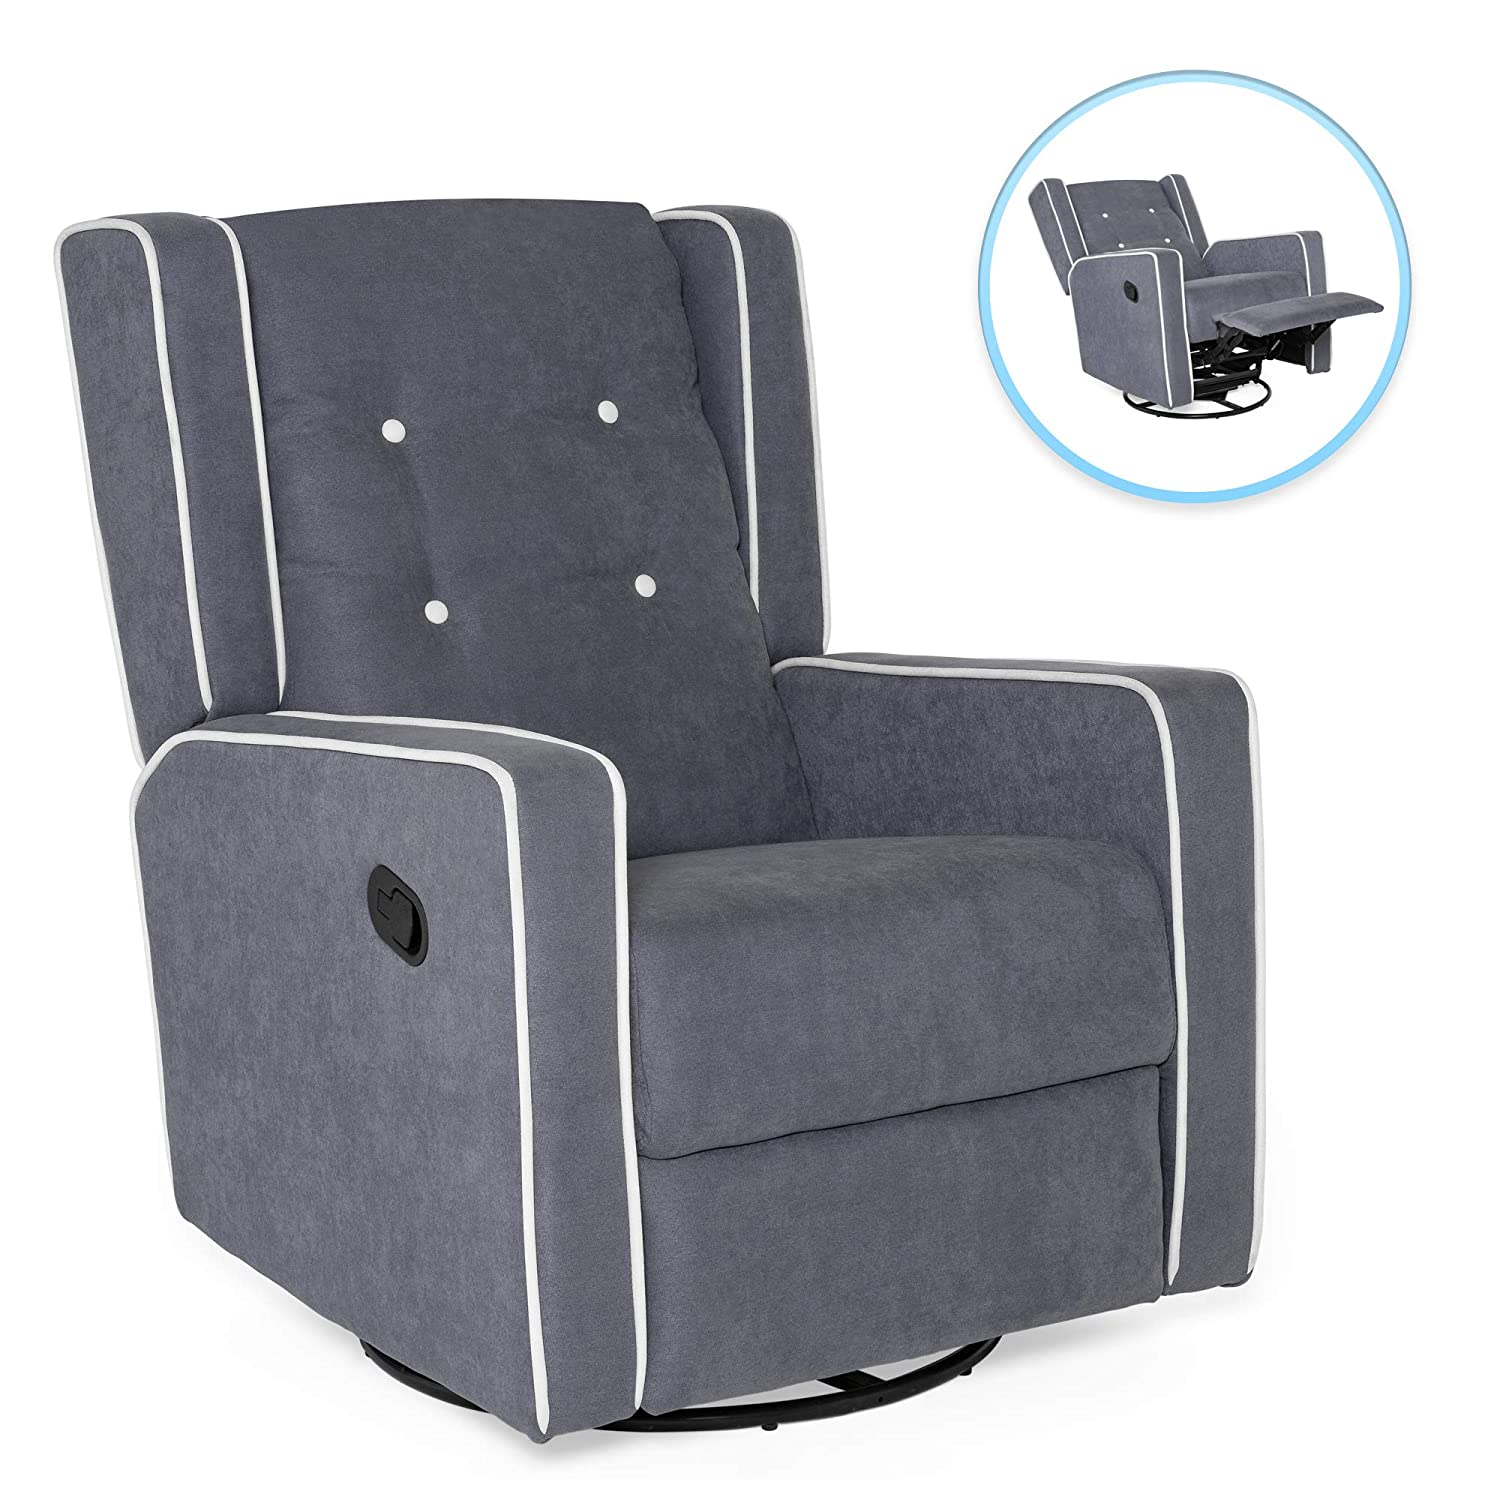 Best choice products mid century modern tufted upholstered swivel recliner lounge rocking chair for nursery home living room study w 360 degree swivel